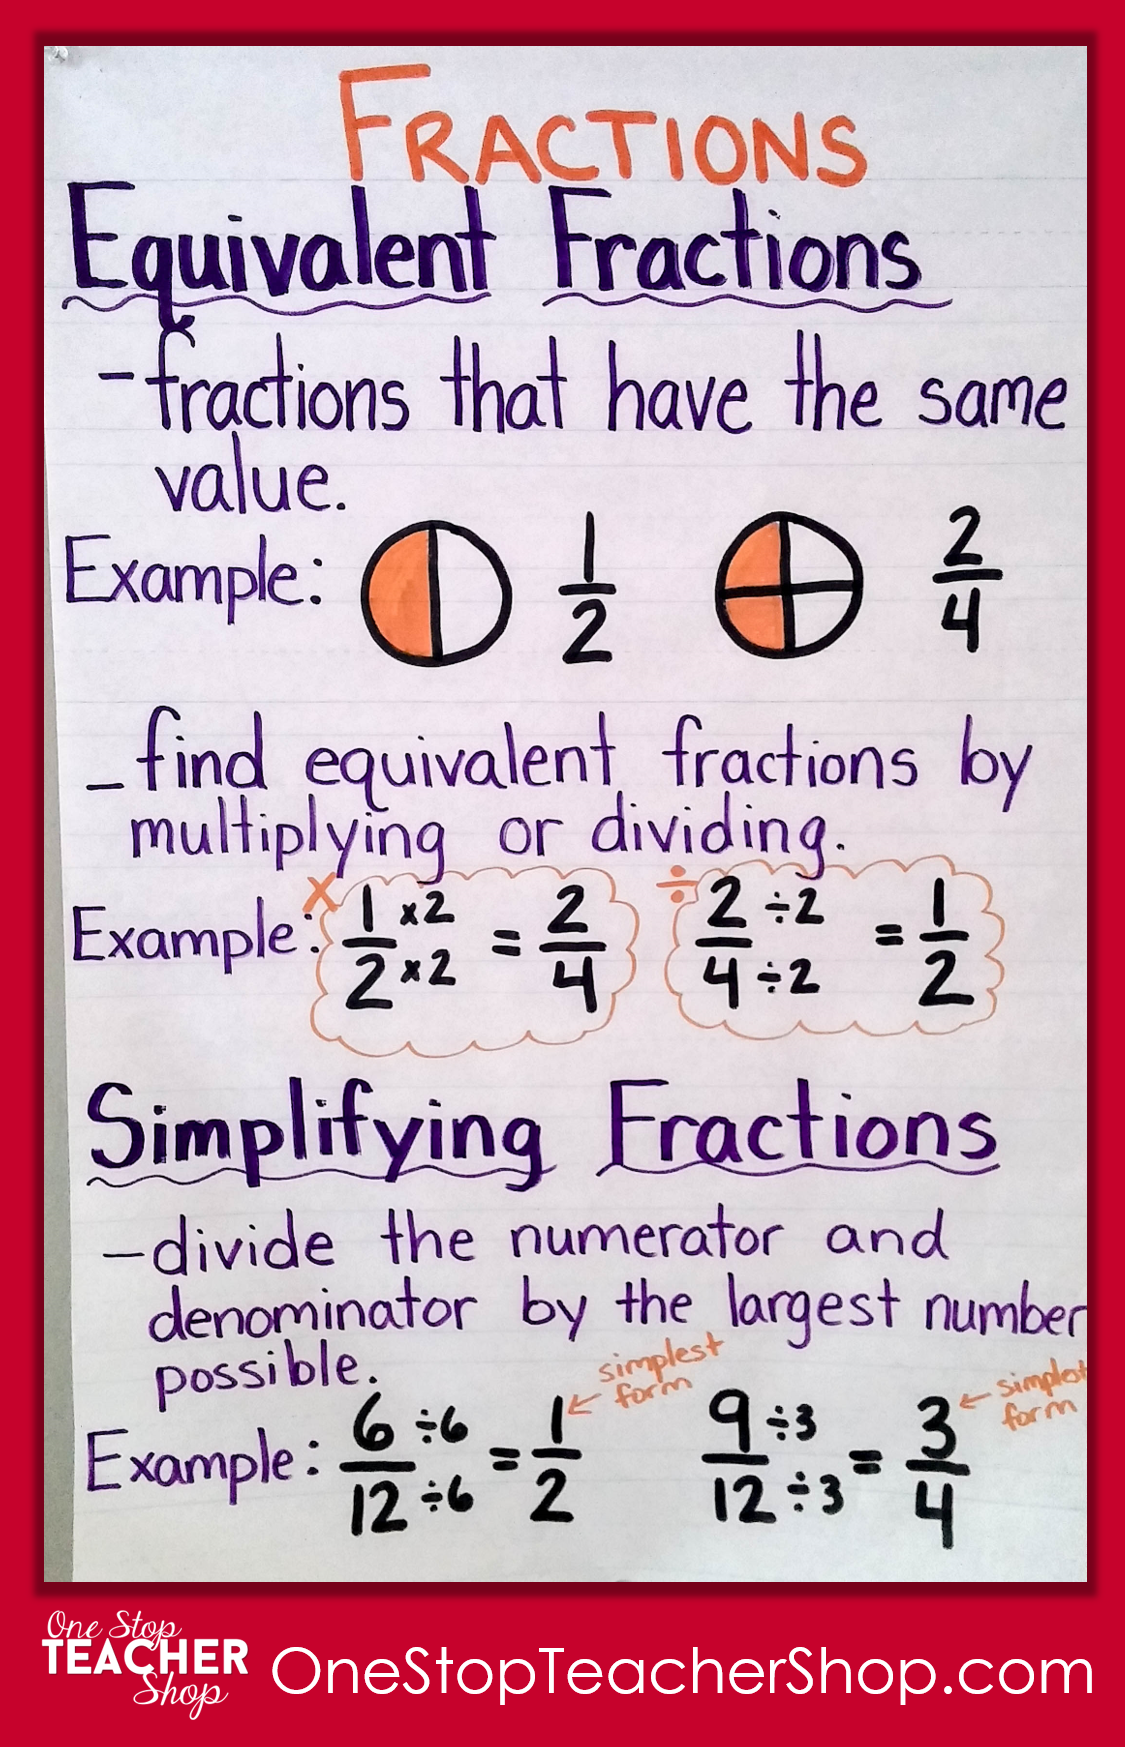 Equivalent Fractions Anchor Chart - Check out my collection of anchor charts for math, reading, writing, and grammar. I love anchor charts even though I'm not so great at making them! Also, get some tips for using anchor charts effectively in your classroom.